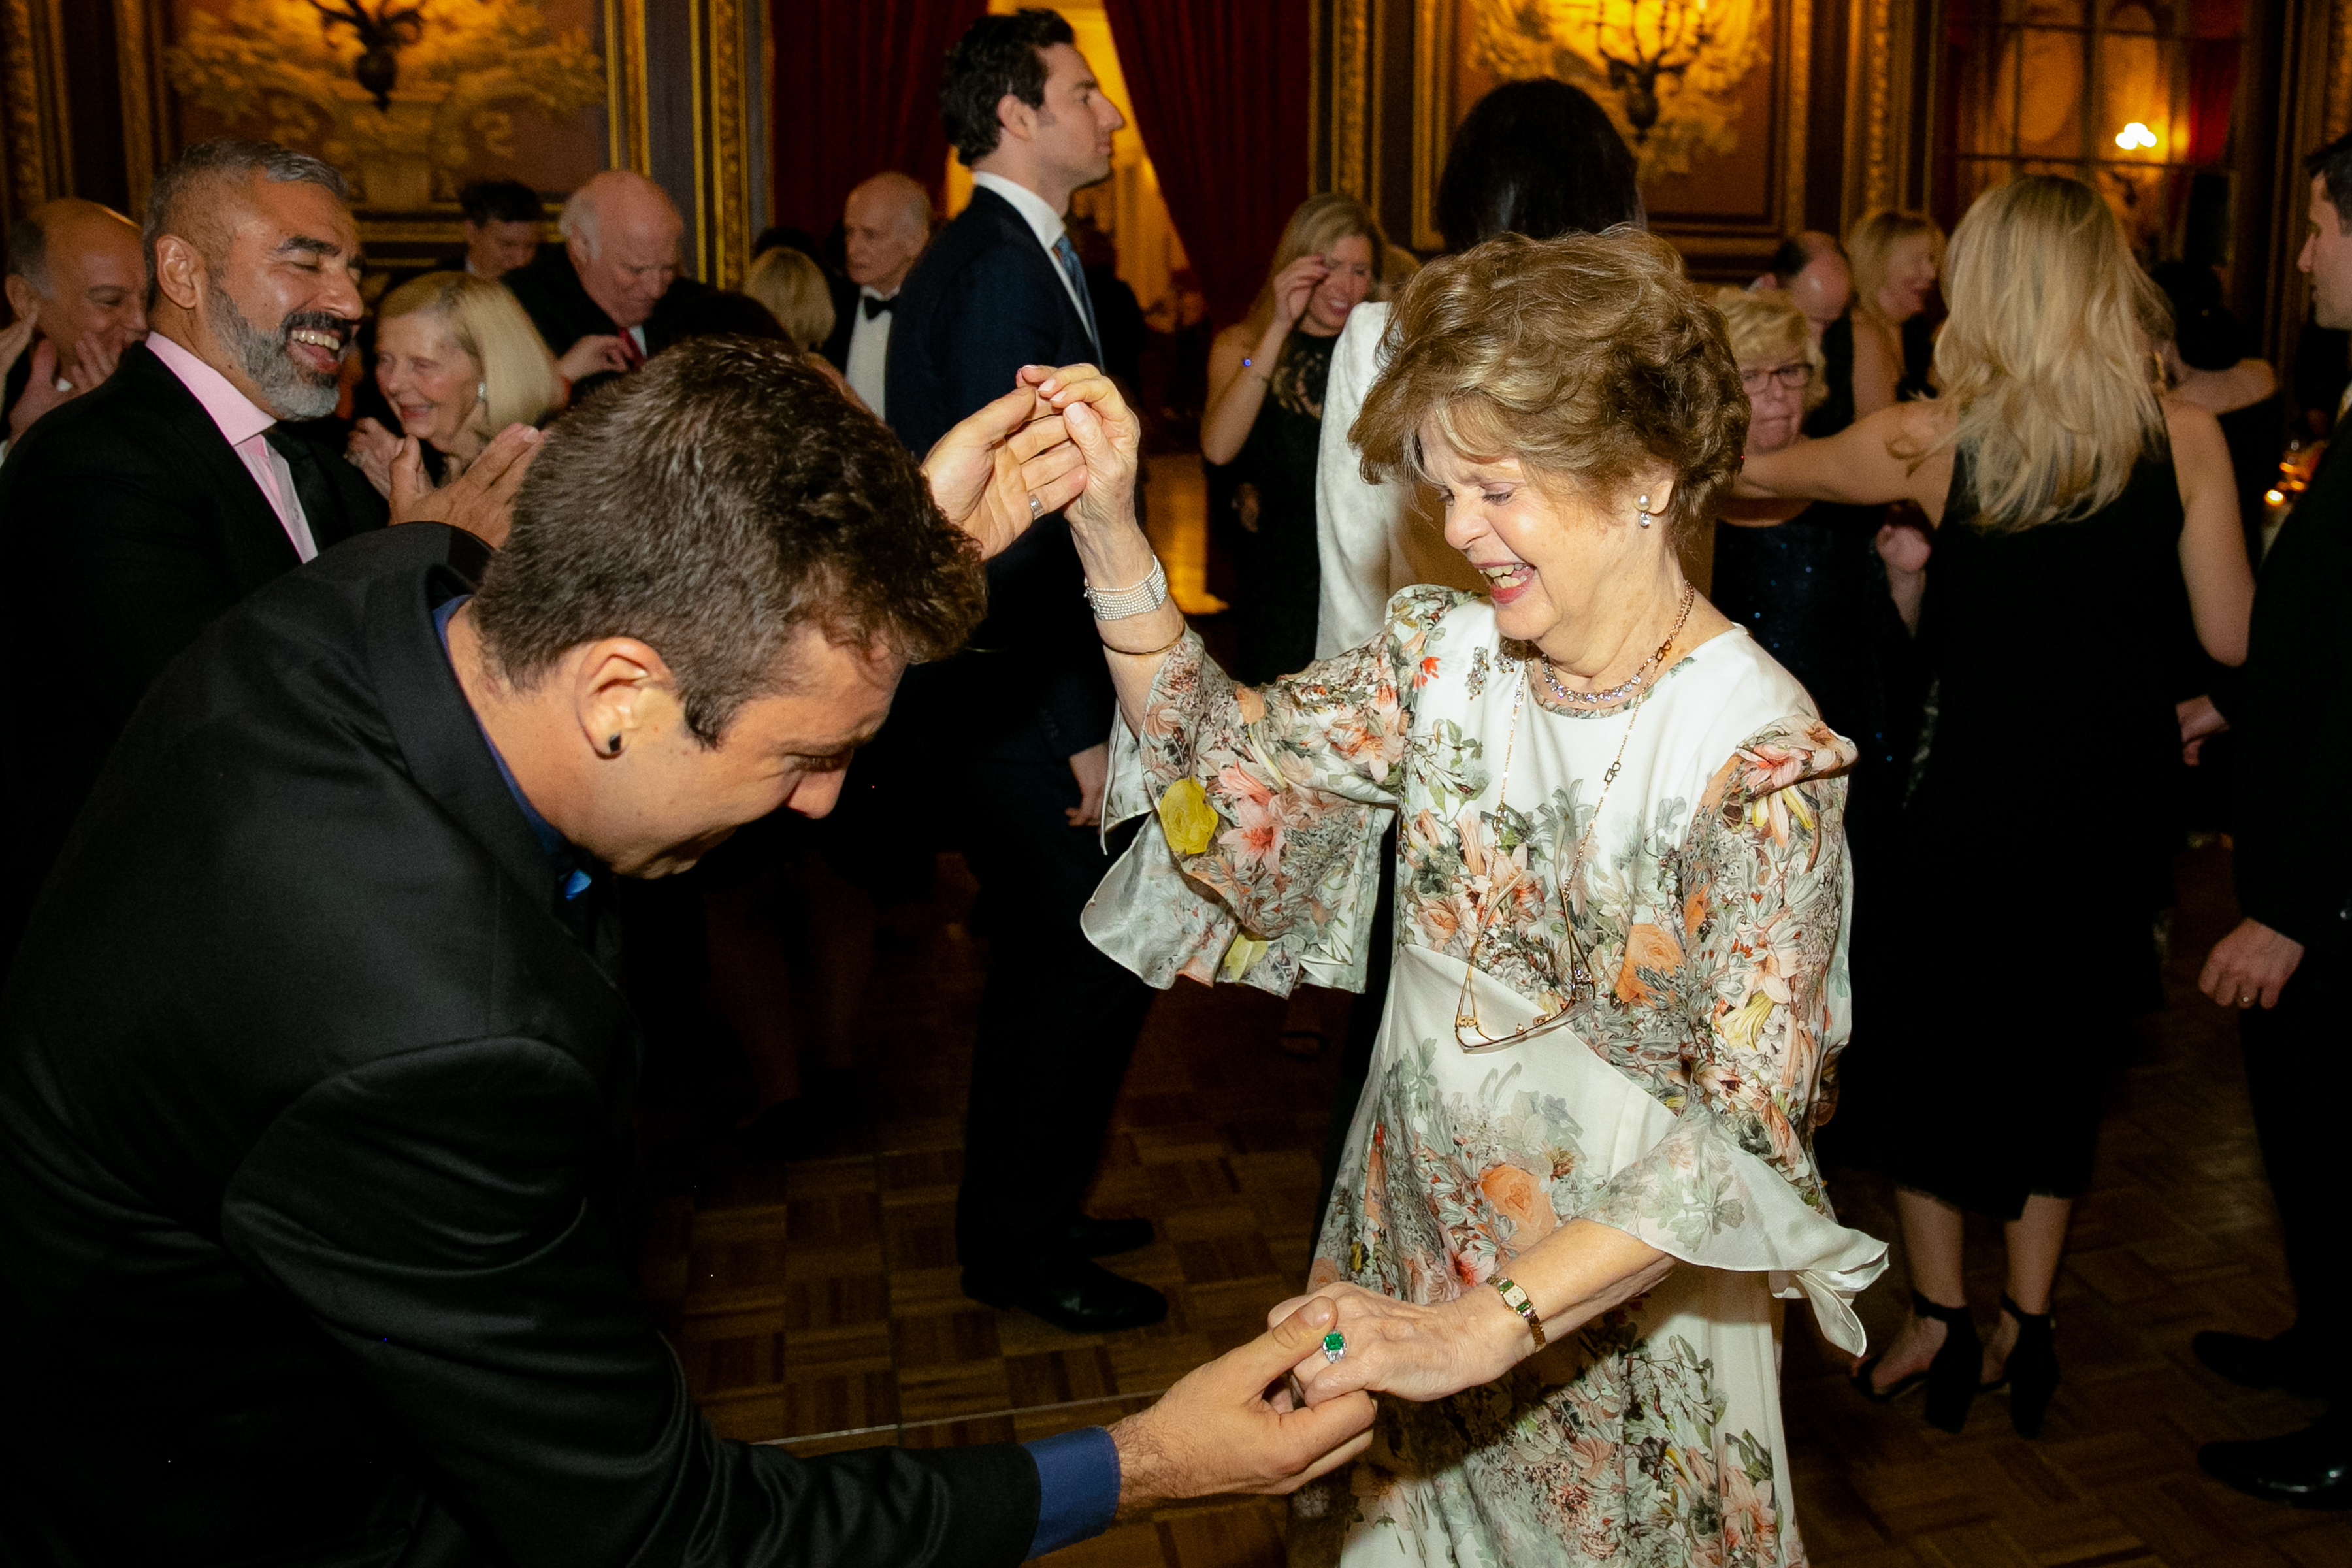 Dr. Legato dancing and smiling with a male guest during the 2019 Gala